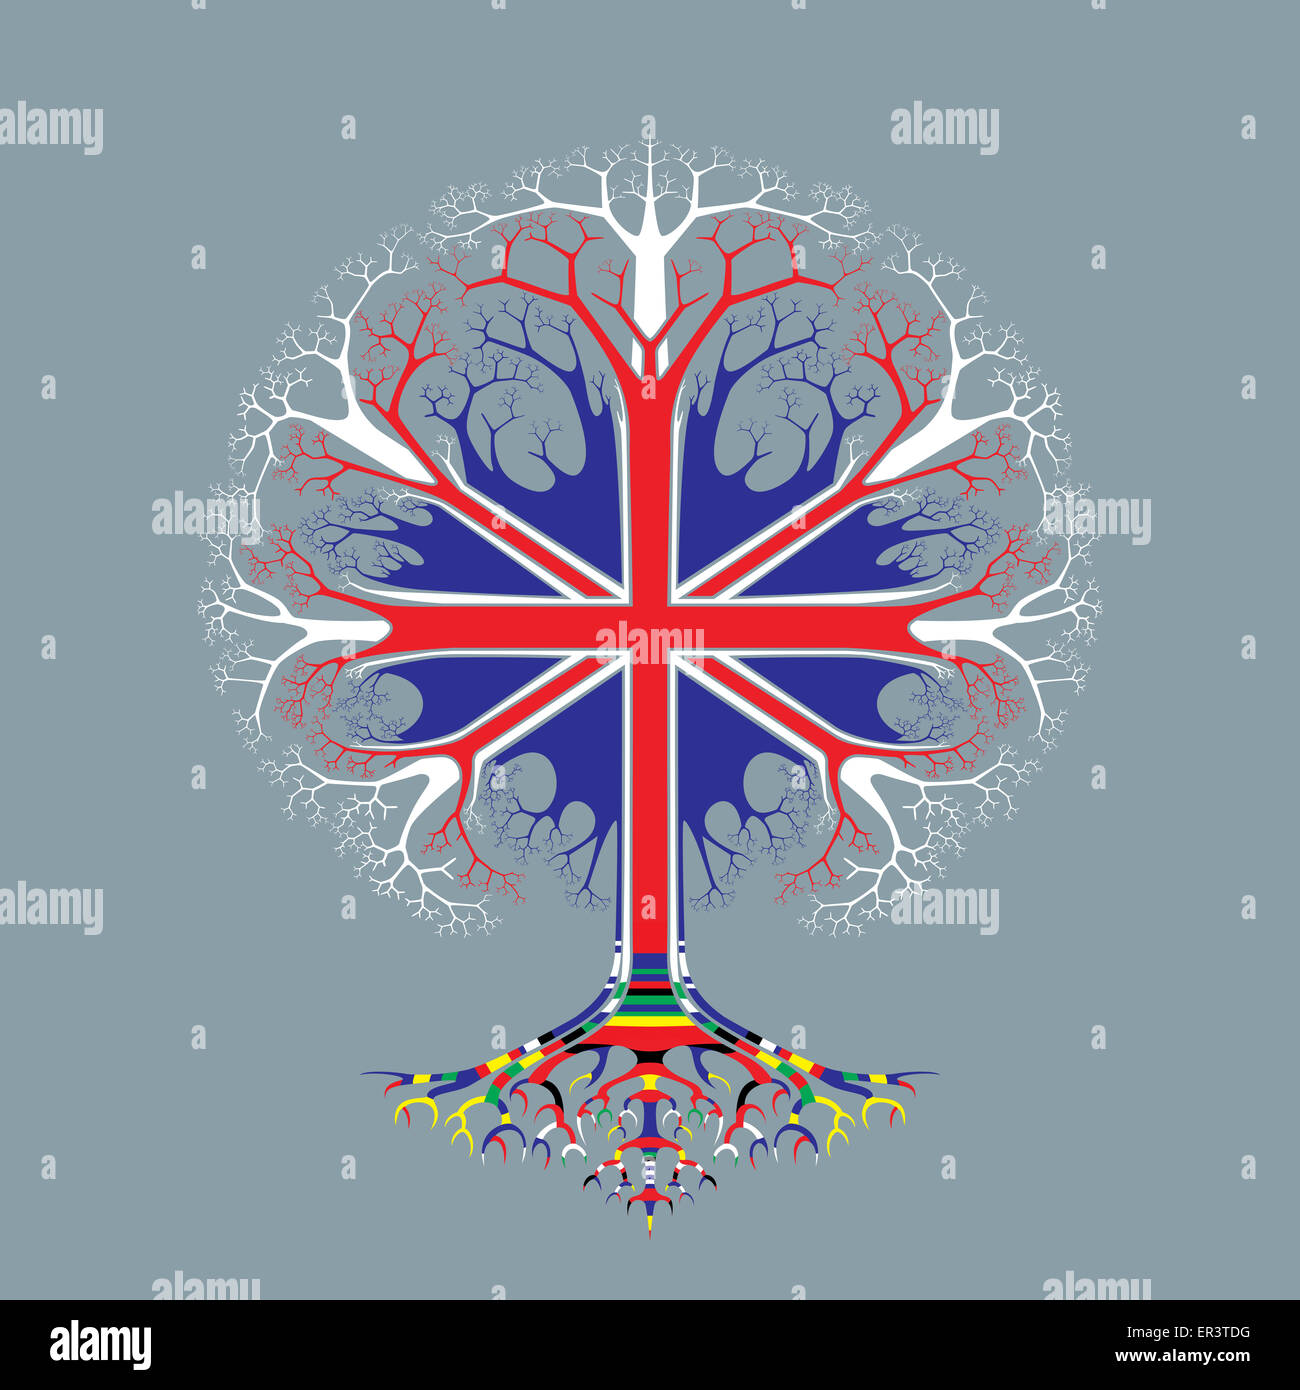 United Kingdom Flag - Oak Tree - Union Jack - Political Symbol - Visual metaphor for unity - Roots of multicultural - Stock Image